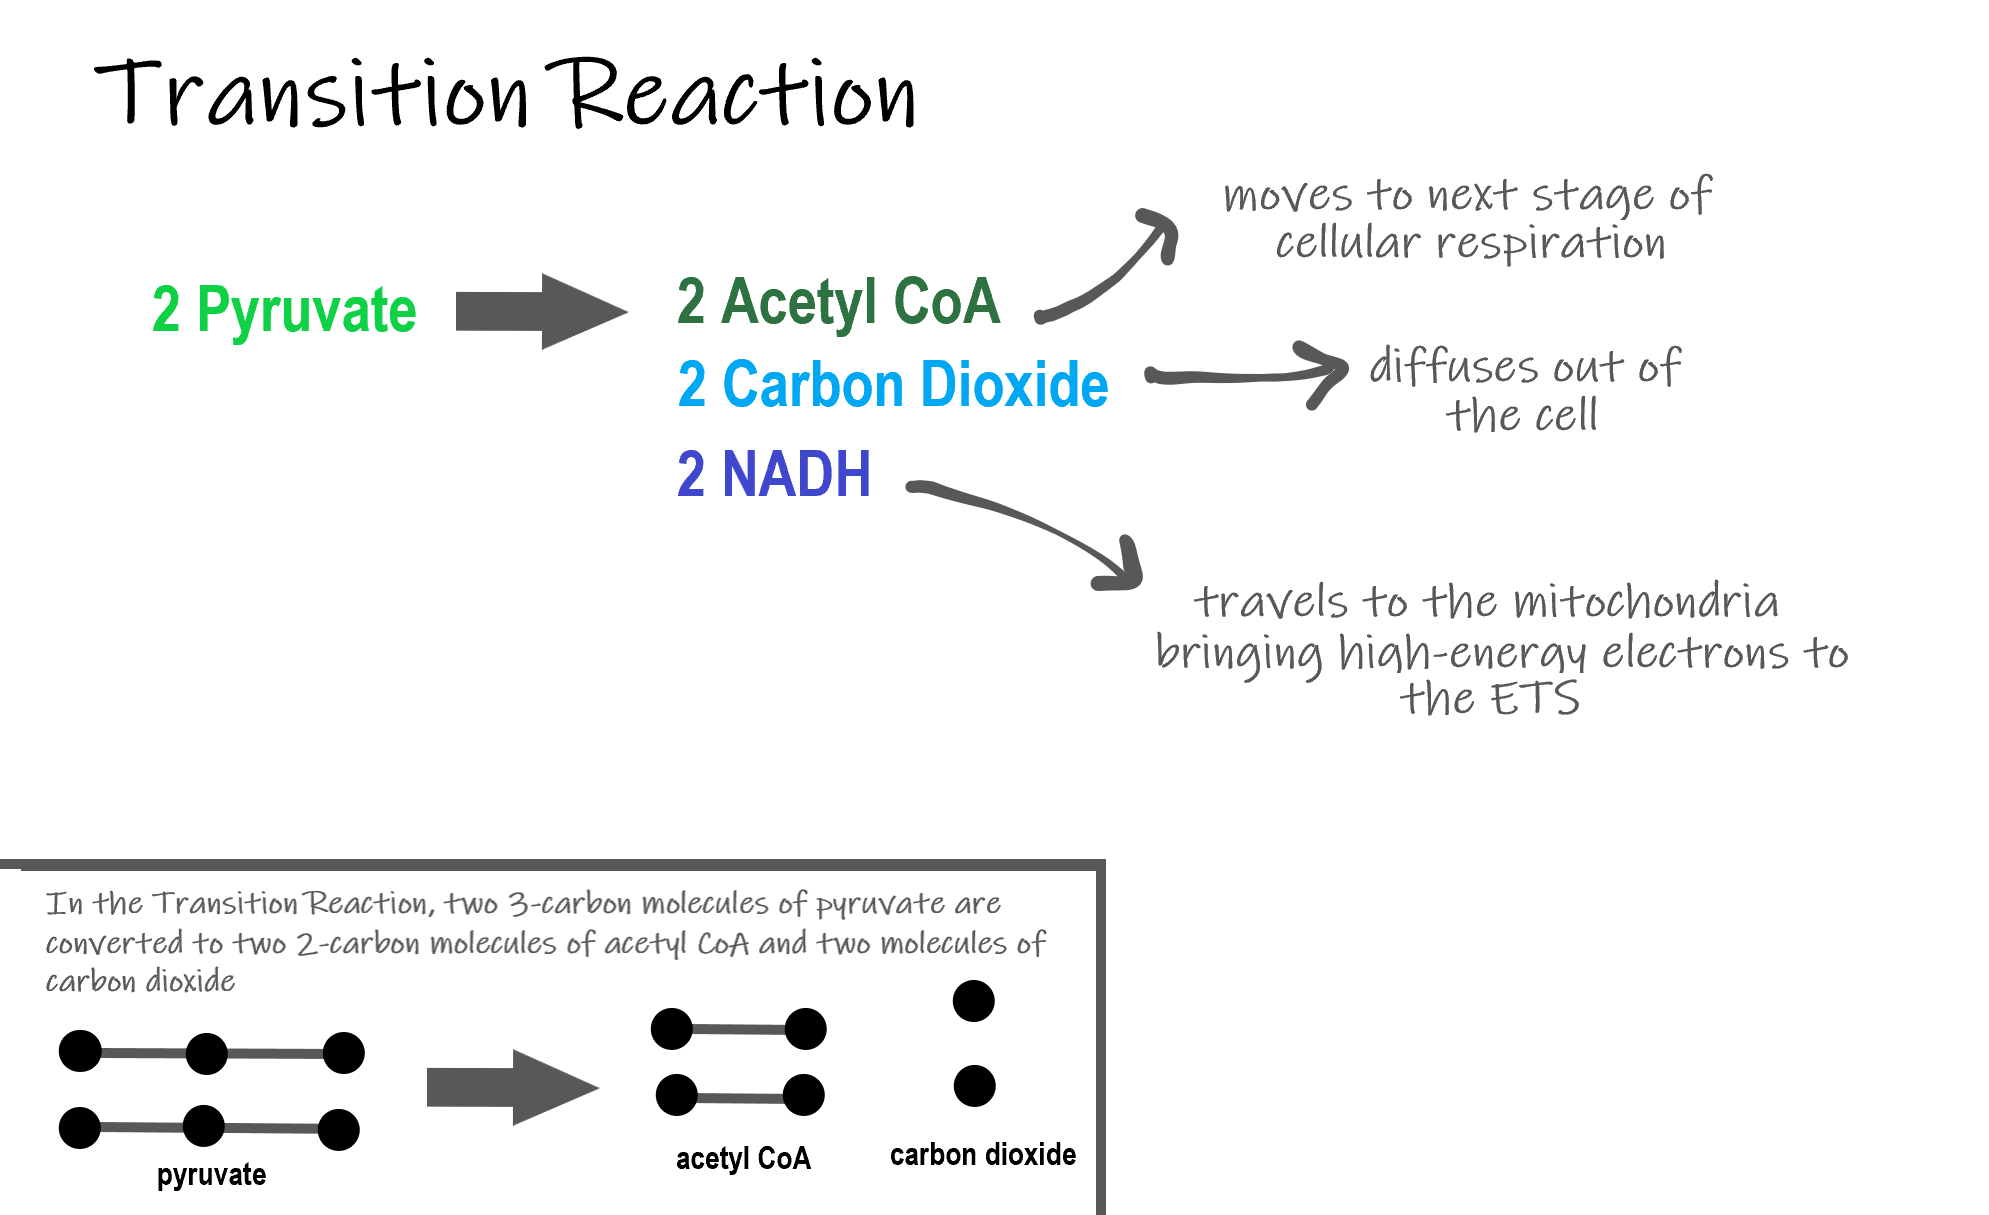 Image shows a diagram of the transition reaction. In this reaction, 2 Pyruvate are converted to two acteyl CoA and 2 Carbon dioxide. In this process, 2 NADH are sent to the ETS carrying high energy electrons. The carbon dioxide leave the cell as metabolic waste and the acetyl CoA enter the Krebs Cycle.